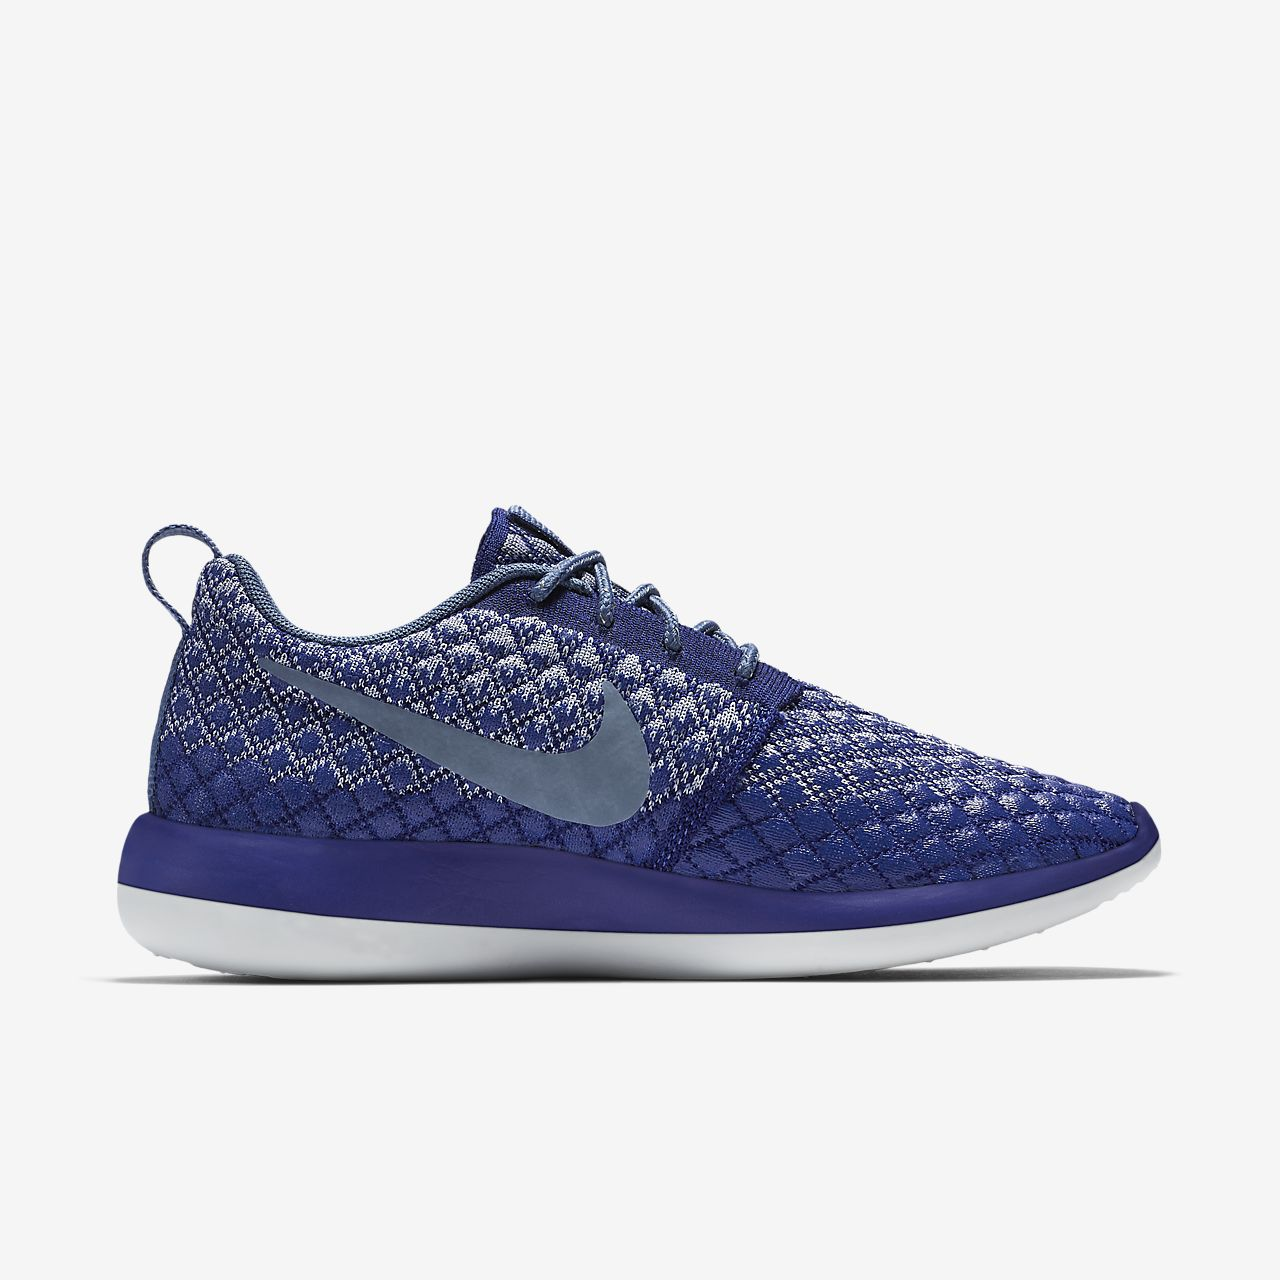 nike roshe two flyknit 365 men's shoe nz